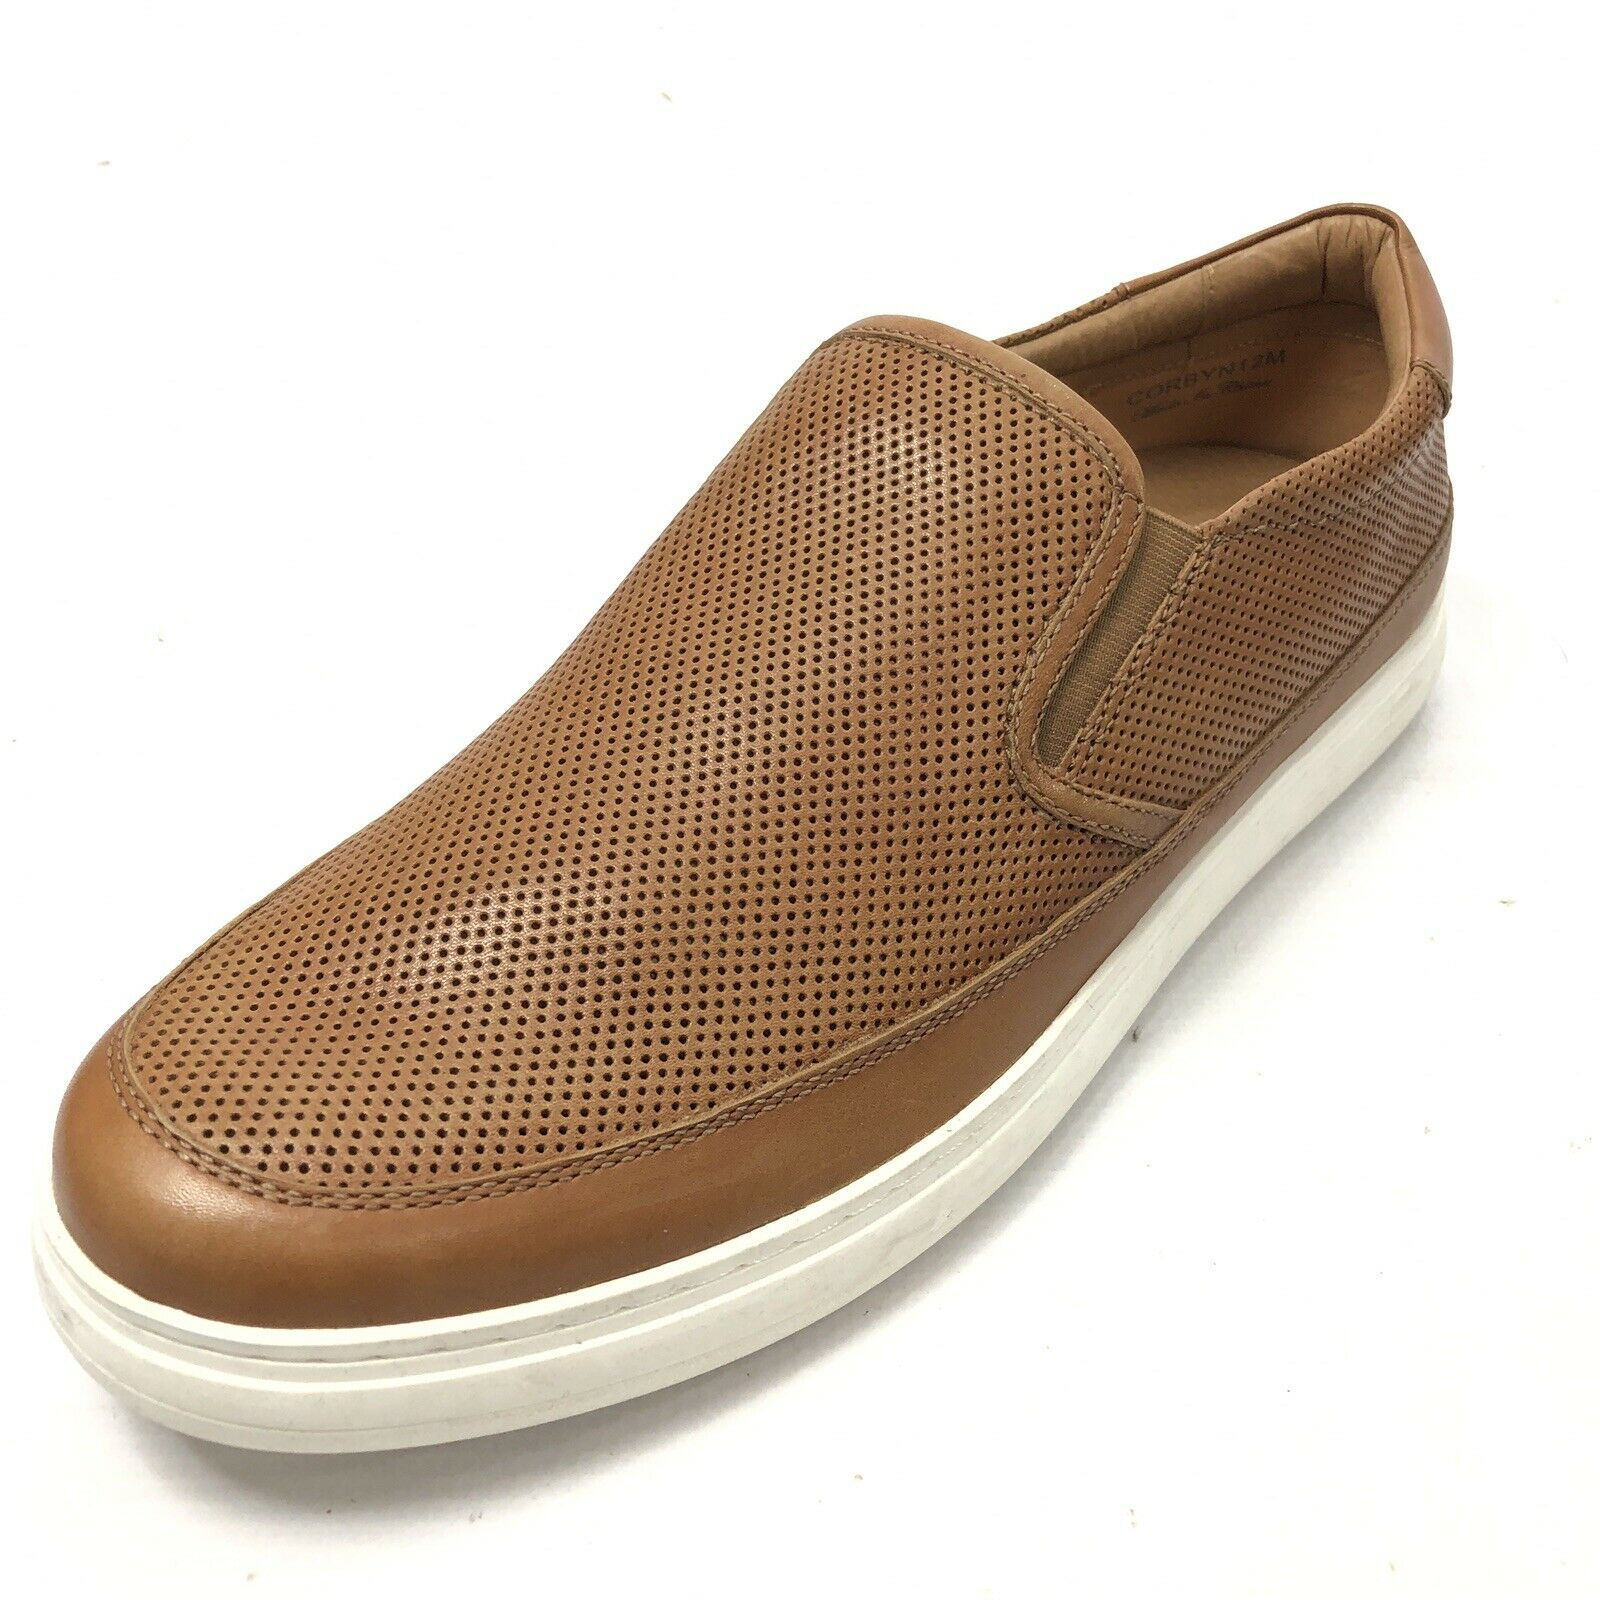 DONALD J PLINER Corbyn Men's 12 Fashion Sneaker Slip On Perforated Brown NEW